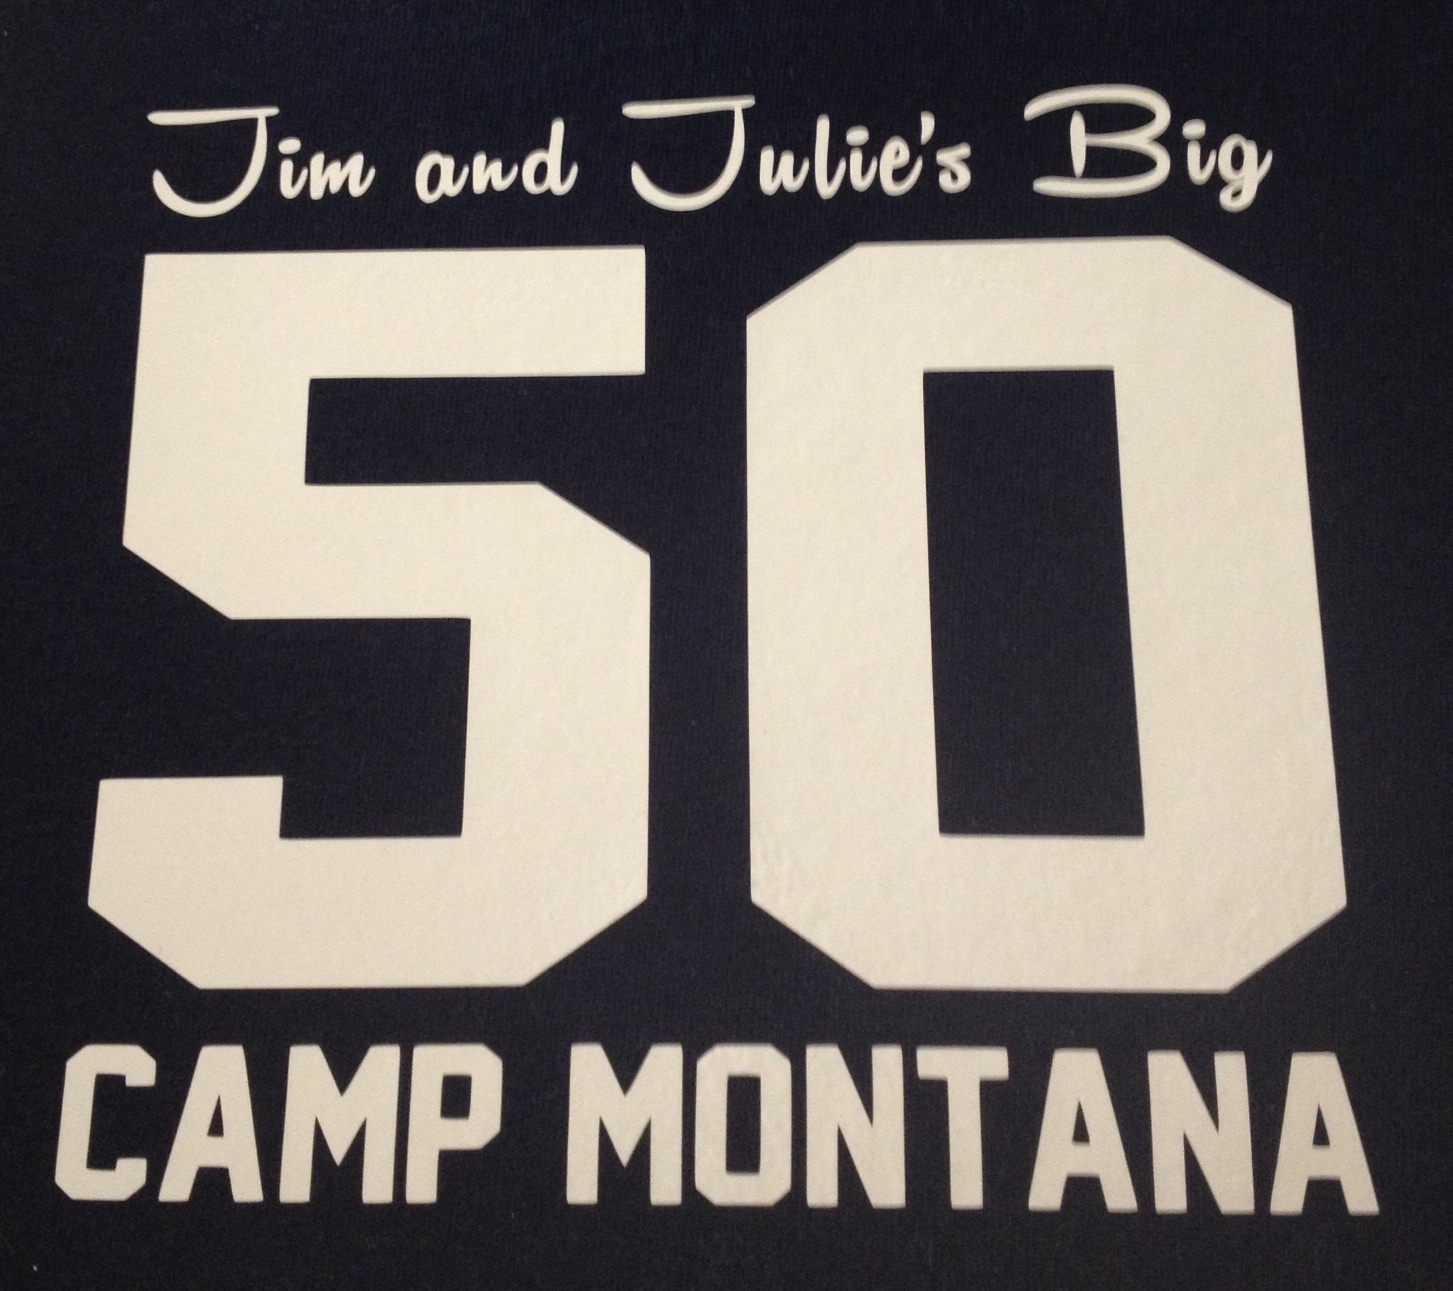 Camp Montana 50th anniversary T-shirt